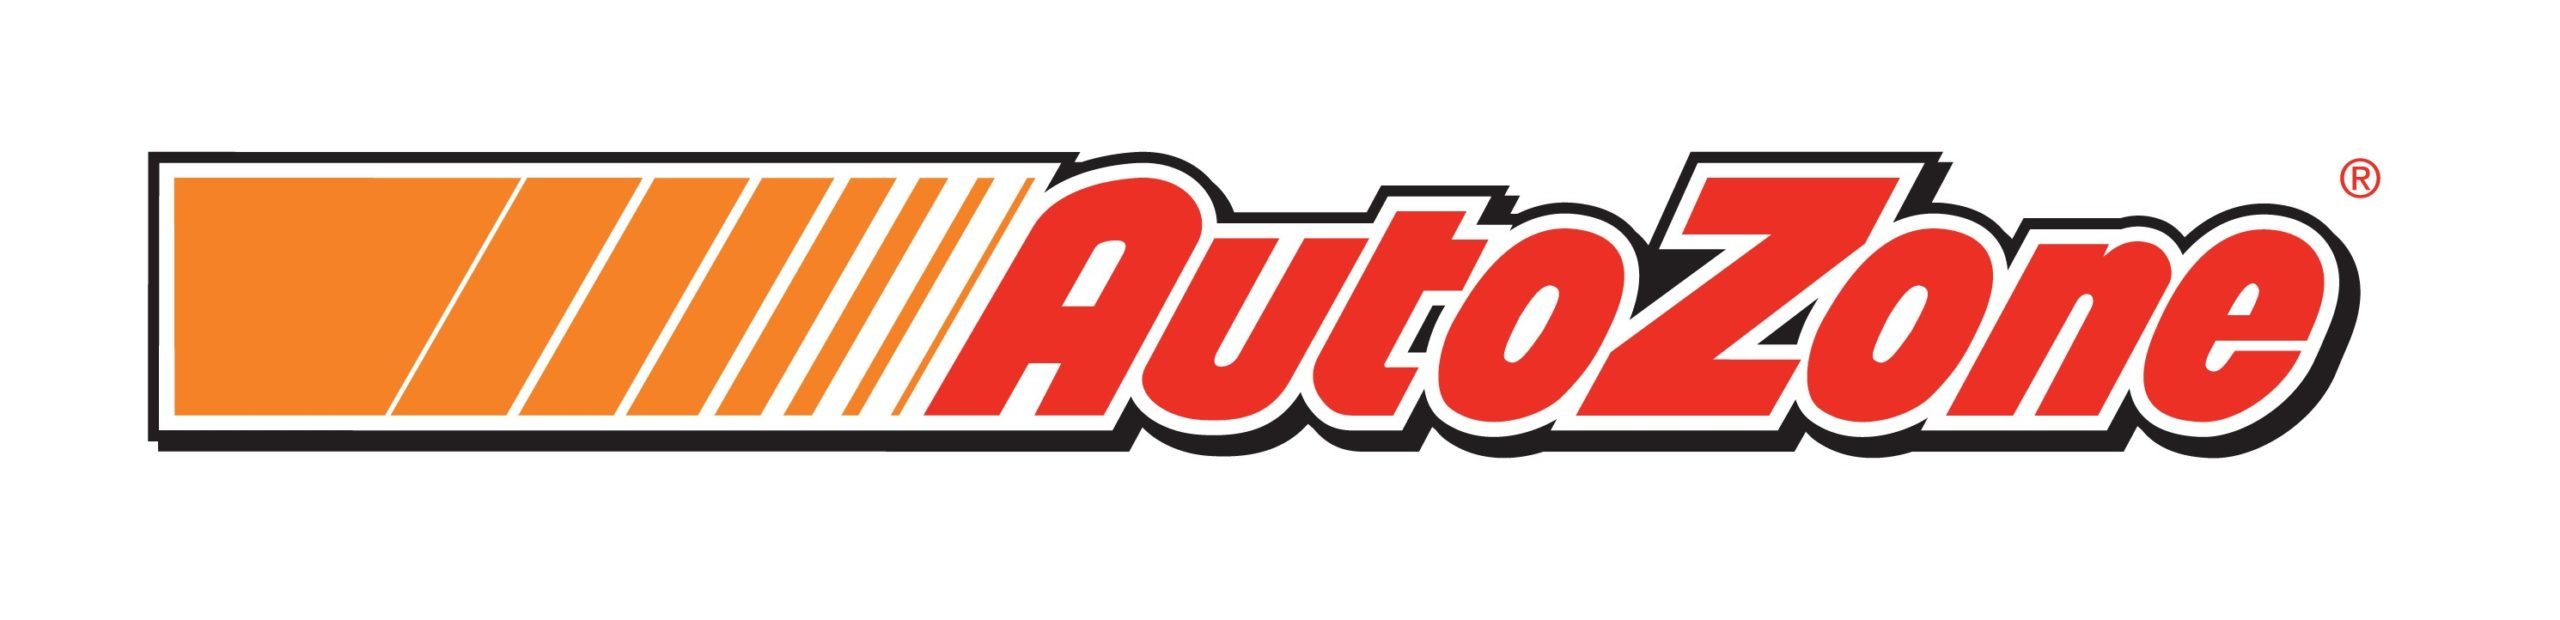 Autozone Store - commercial space obtained at Bald Hill Square